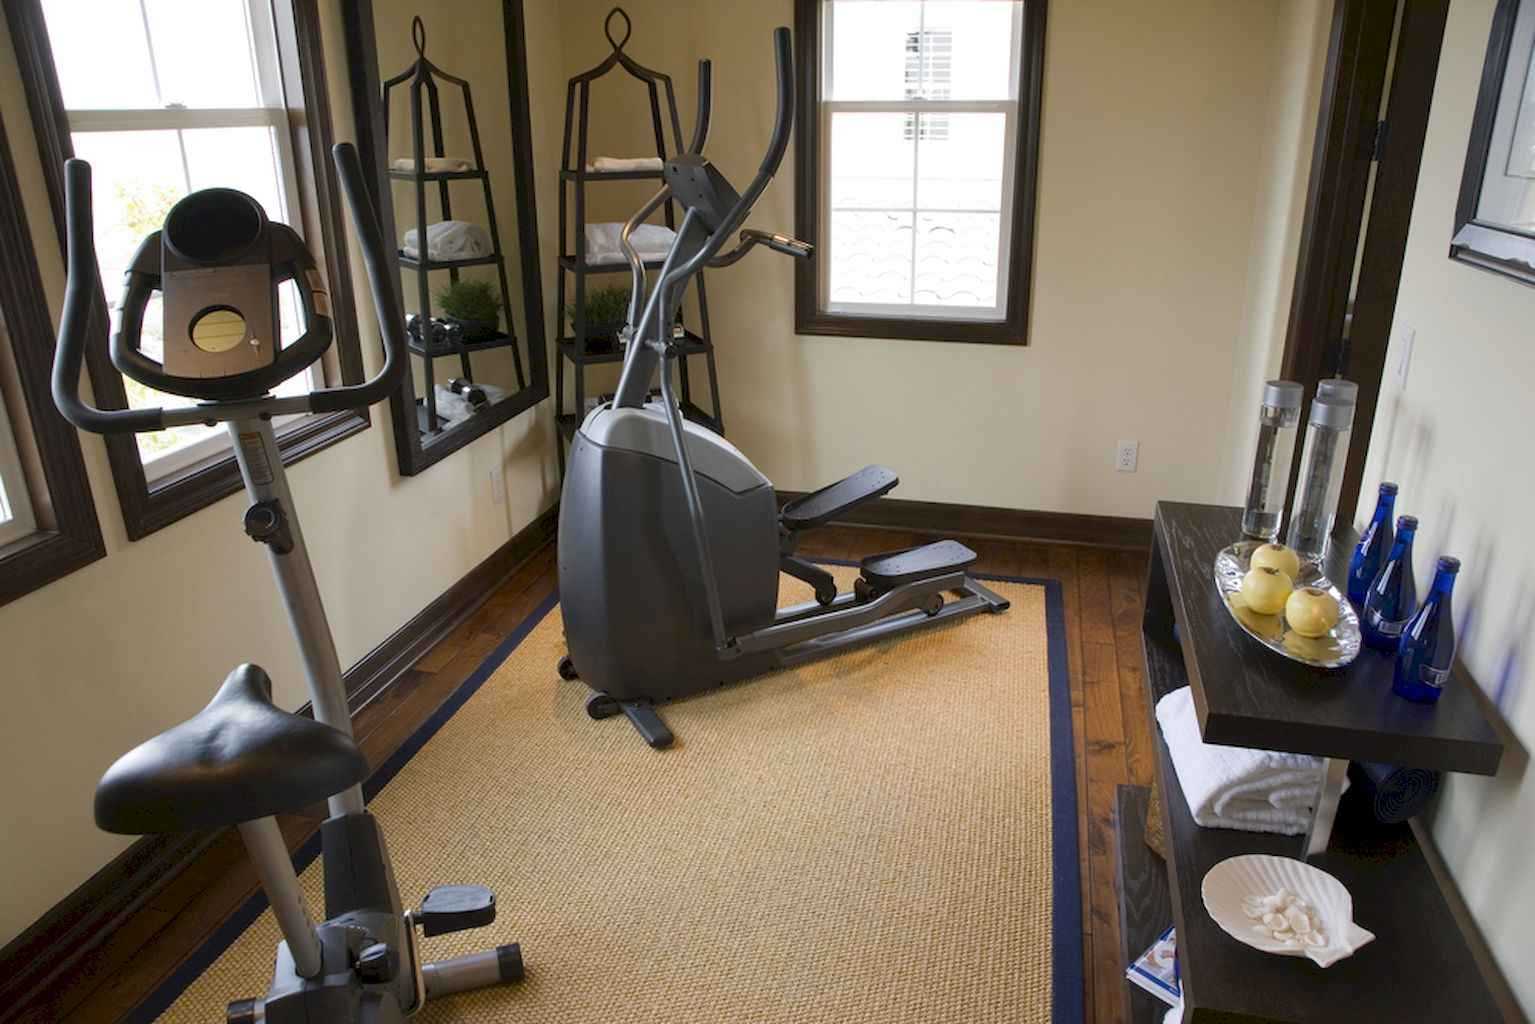 Cool home gym ideas decoration on a budget for small room